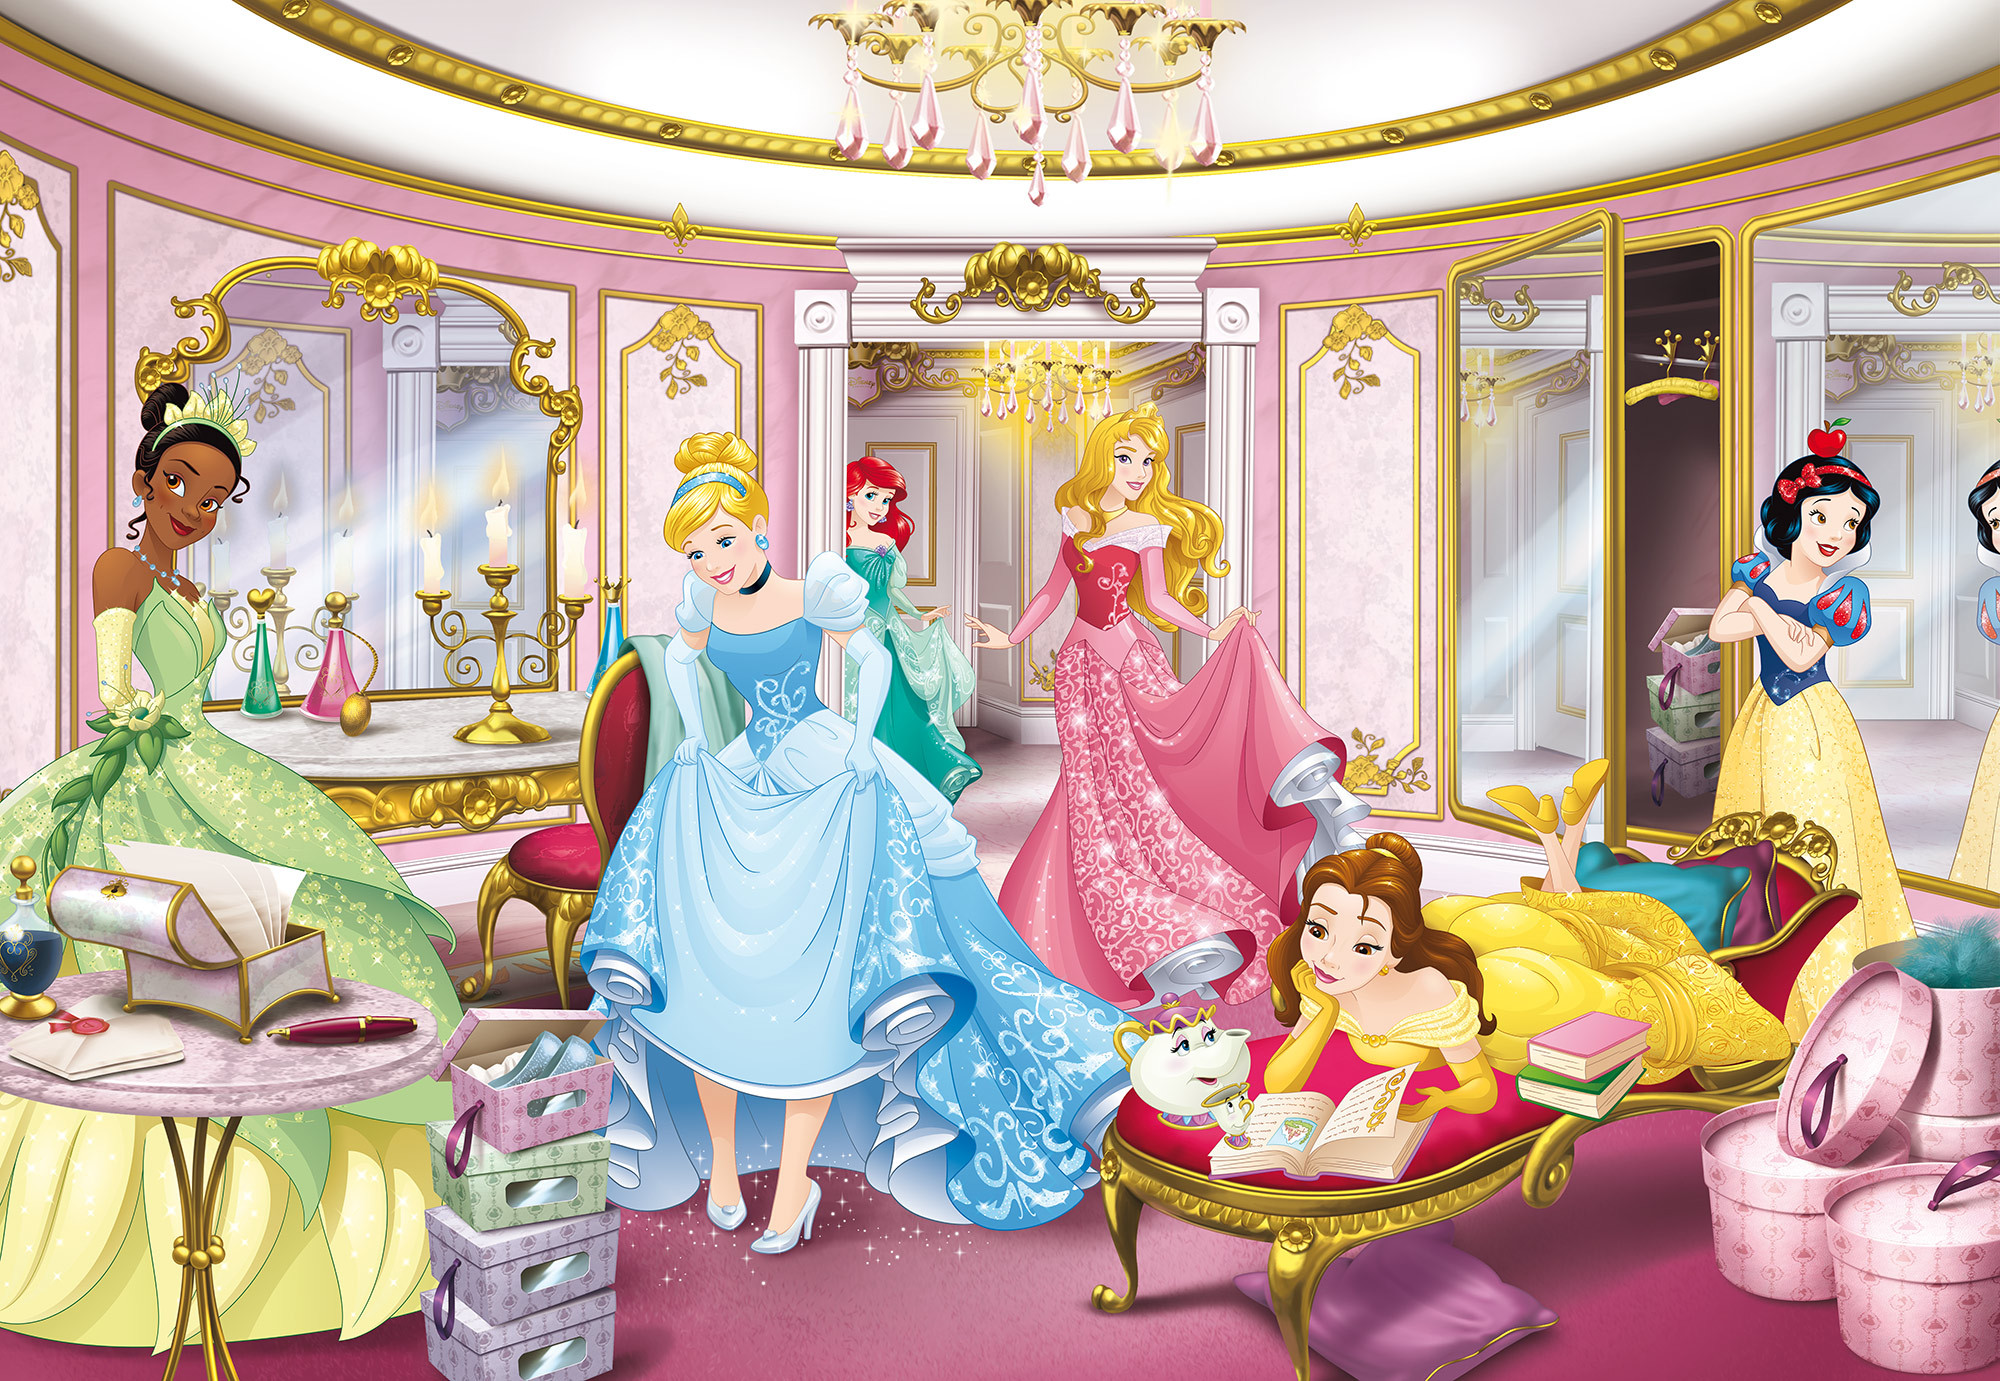 Photomural Disney Princess Mirror 8 4108 From Disney